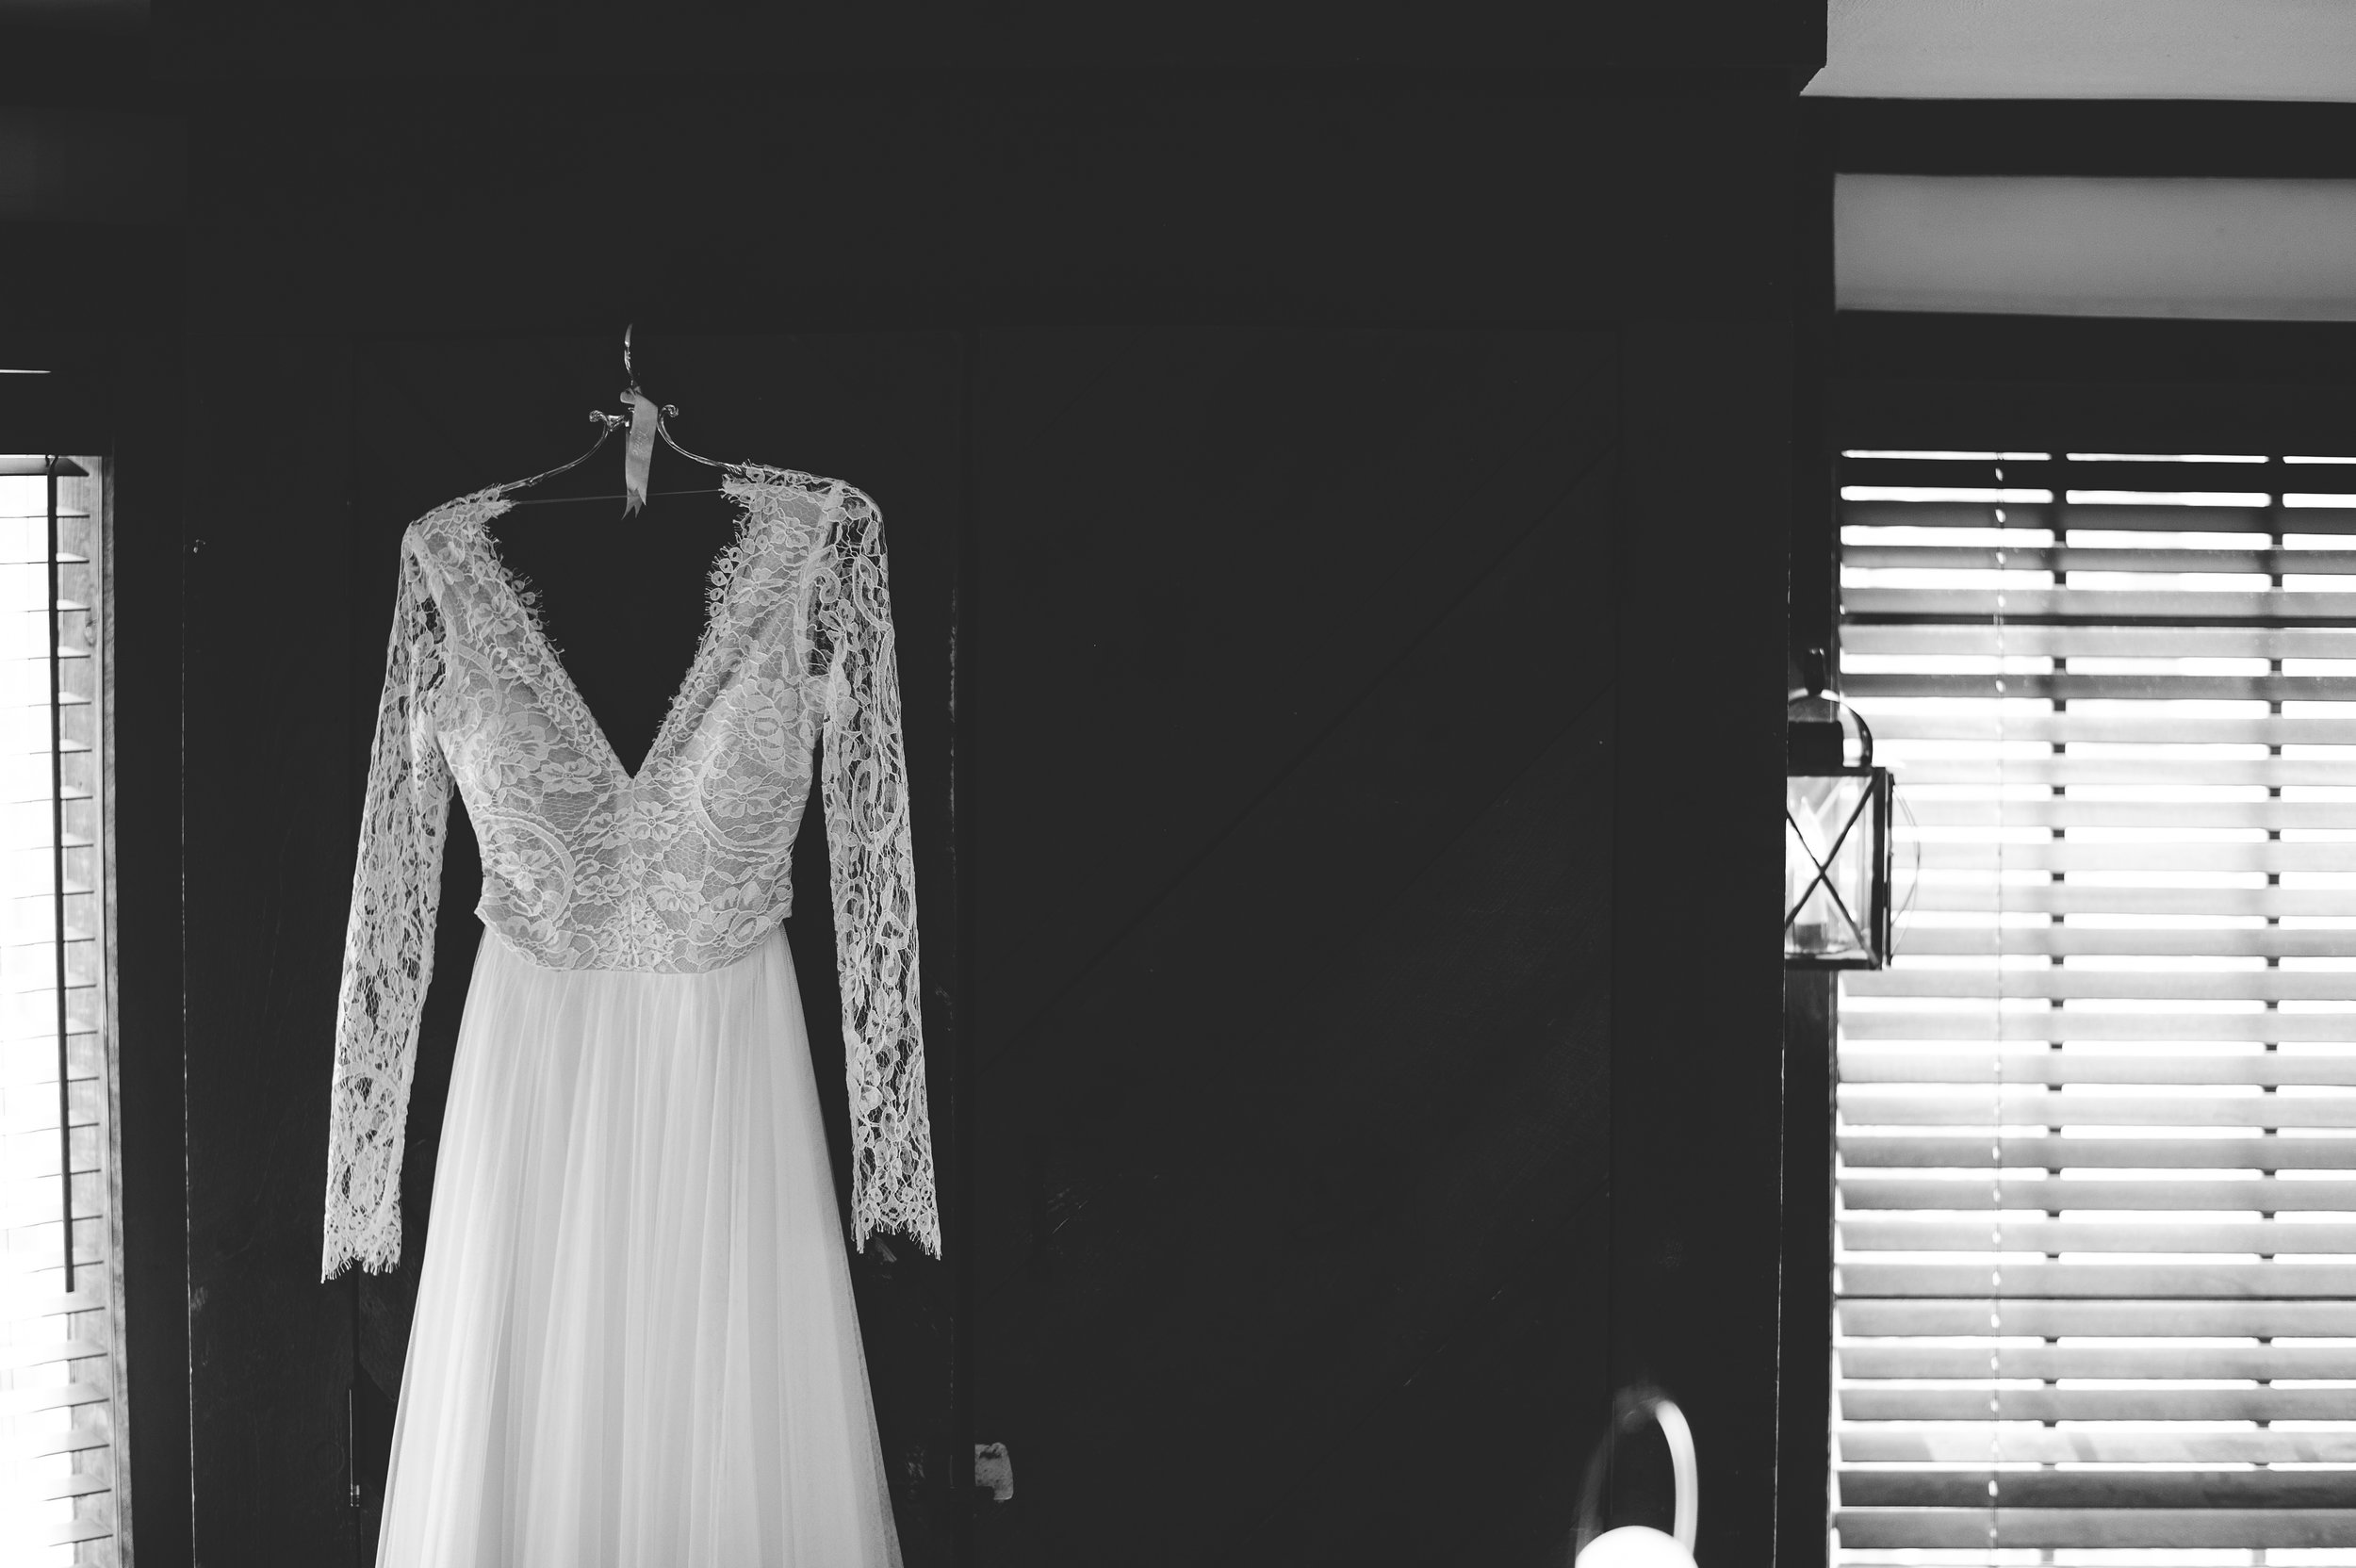 Image from wedding with hanging lace dress